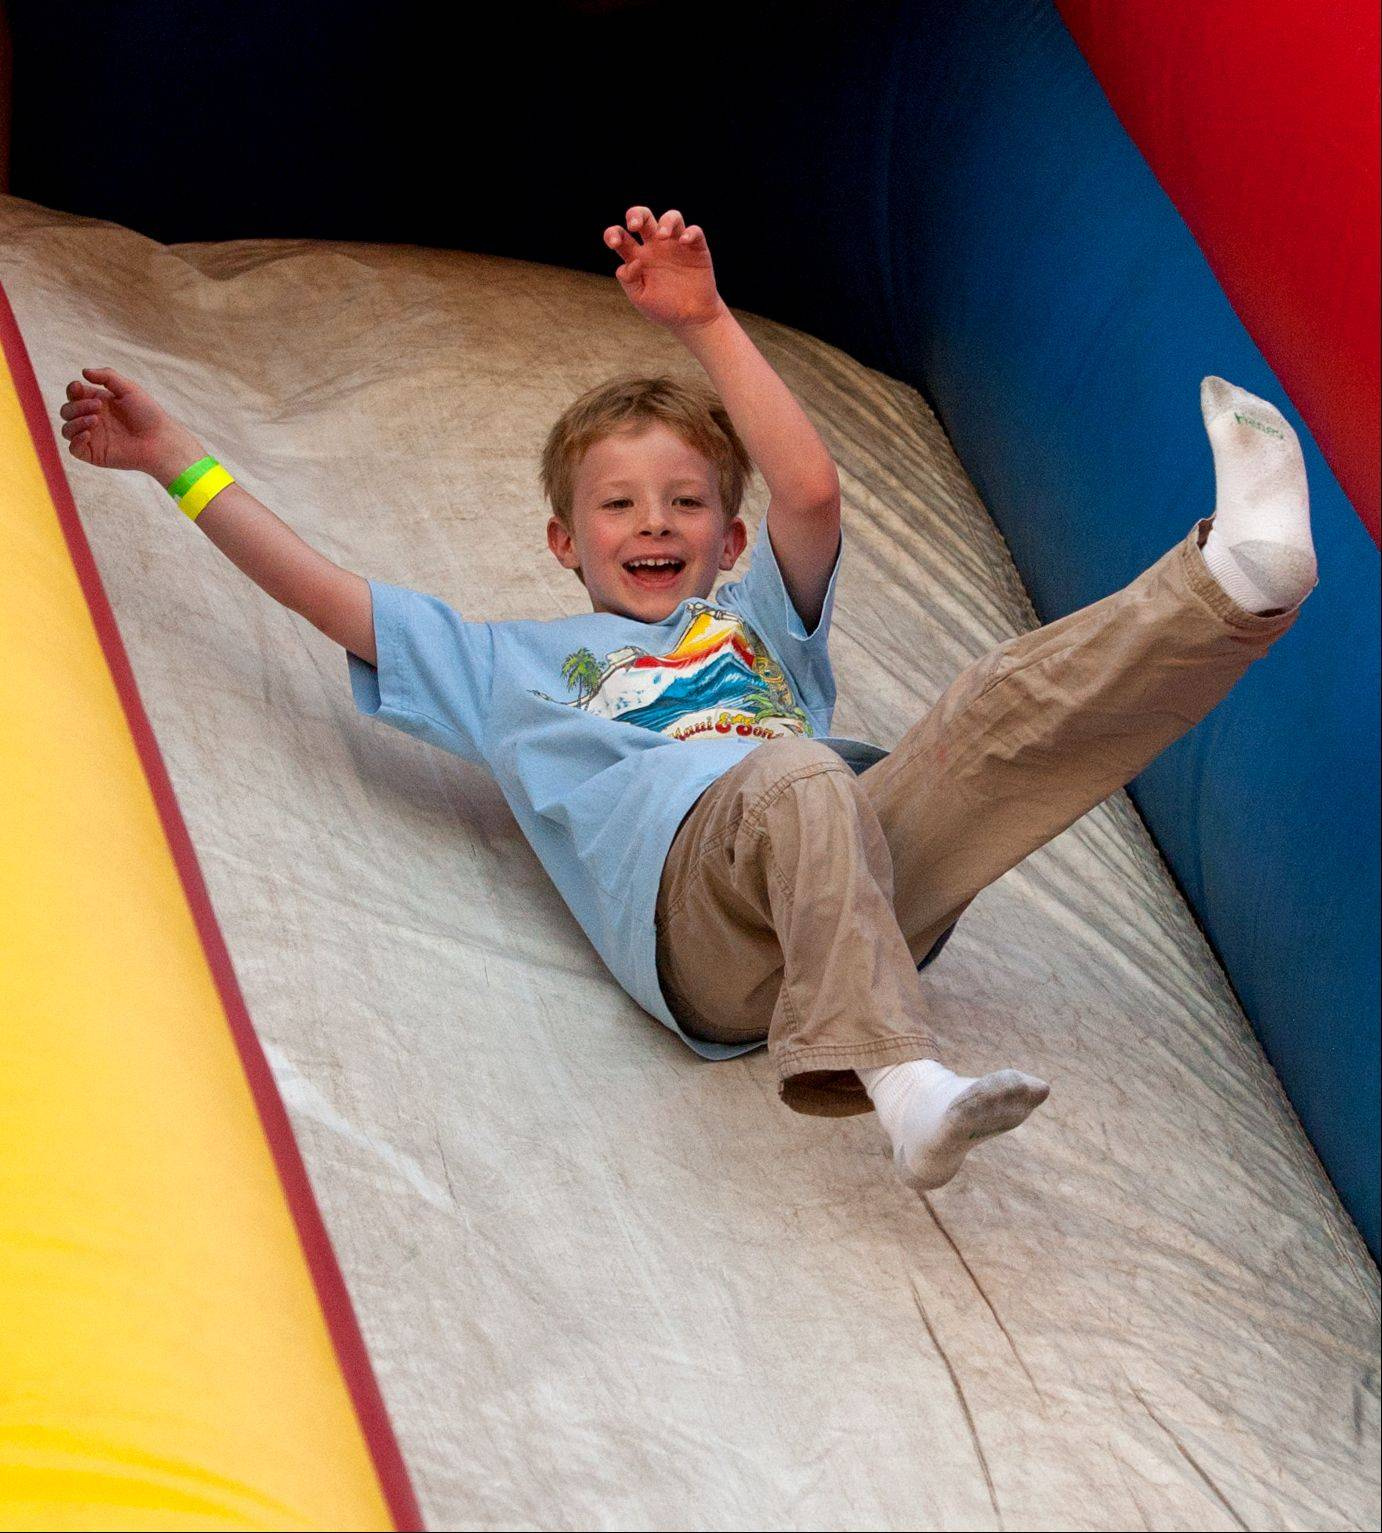 Ben Warren, 6, of Warrenville enjoys his slide during the Warrenville Summer Daze festival.